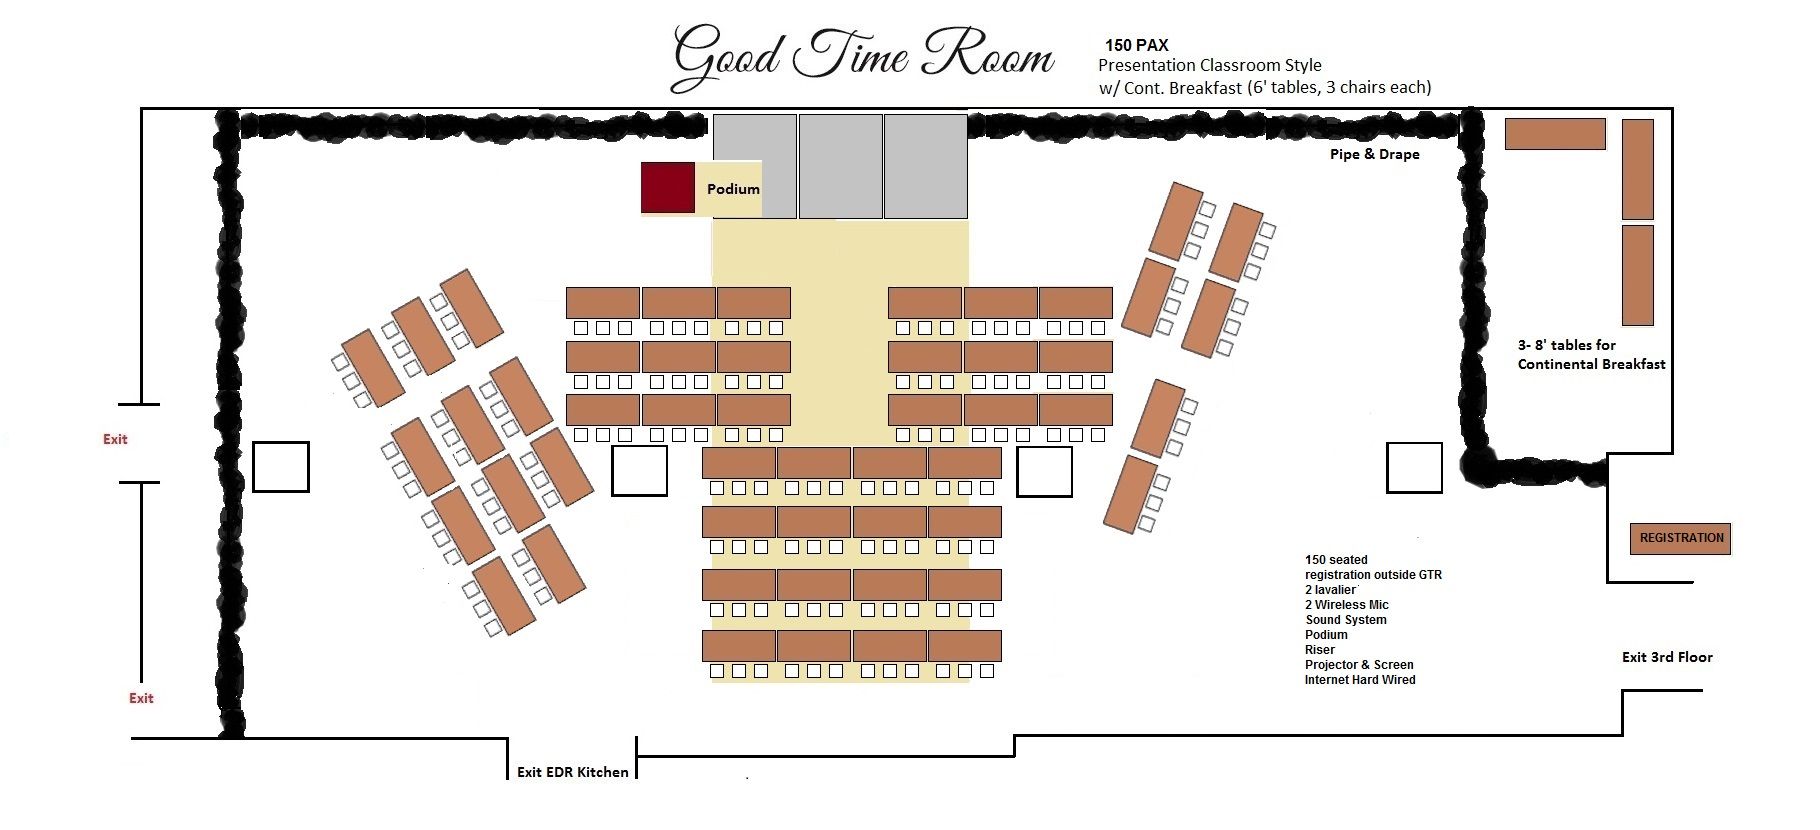 Good Time Room: Presentation/Classroom Layout